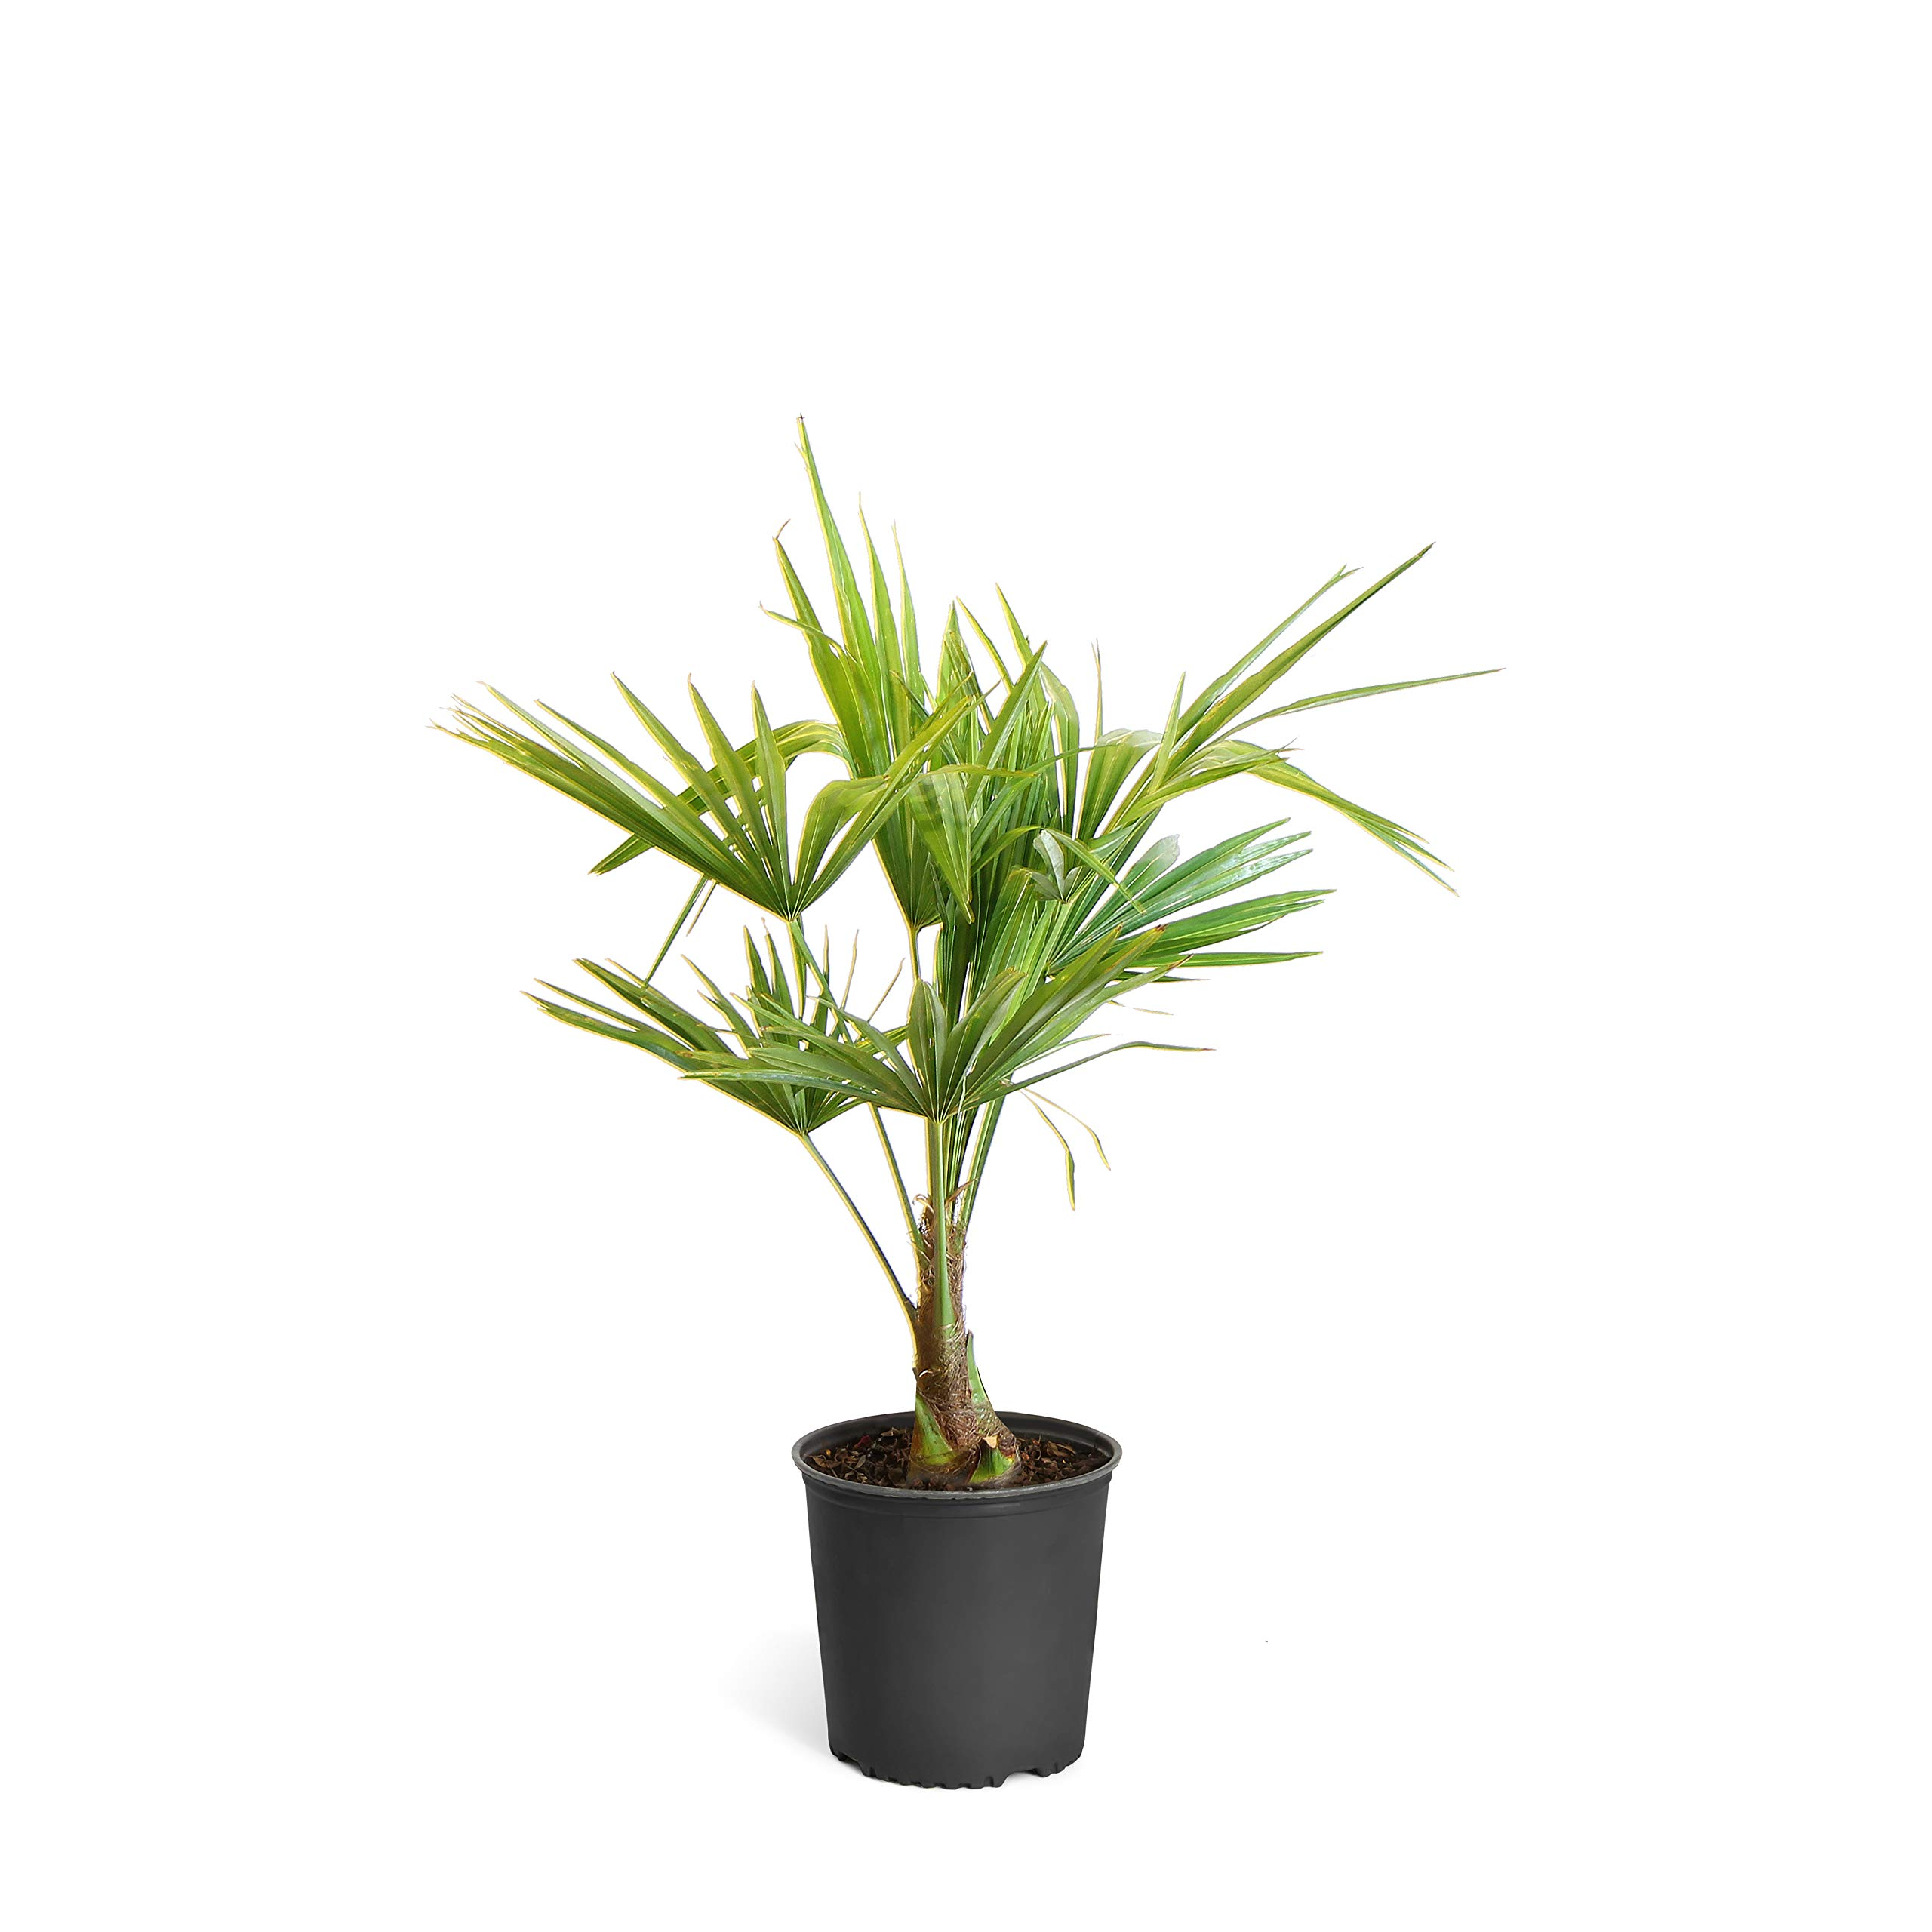 Pindo Palm - 3 Gallon